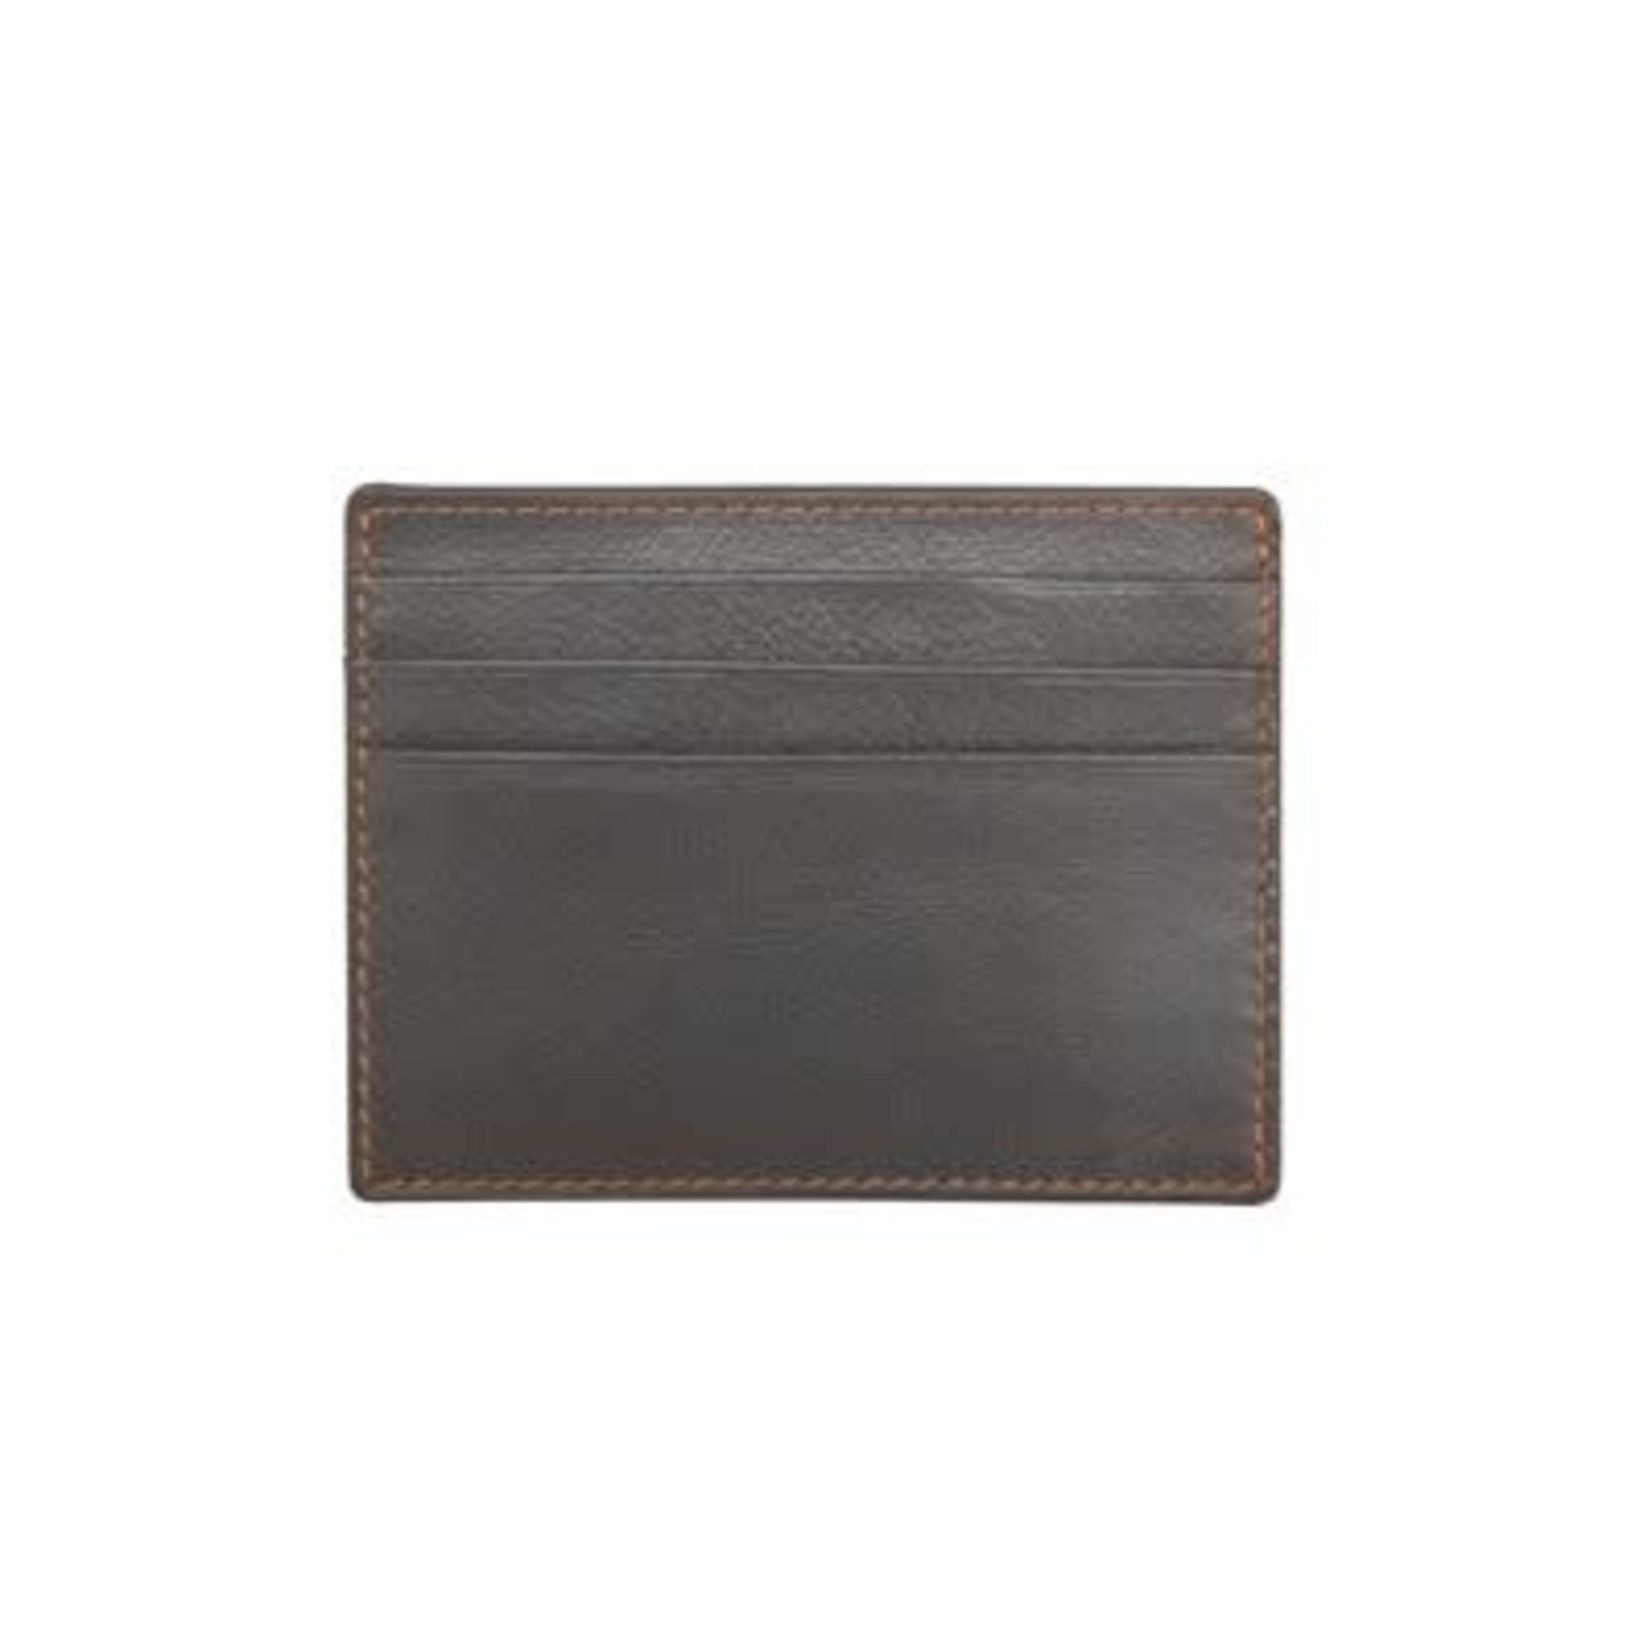 Leather Handbags and Accessories 7202 Grey - RFID Mini Card Holder